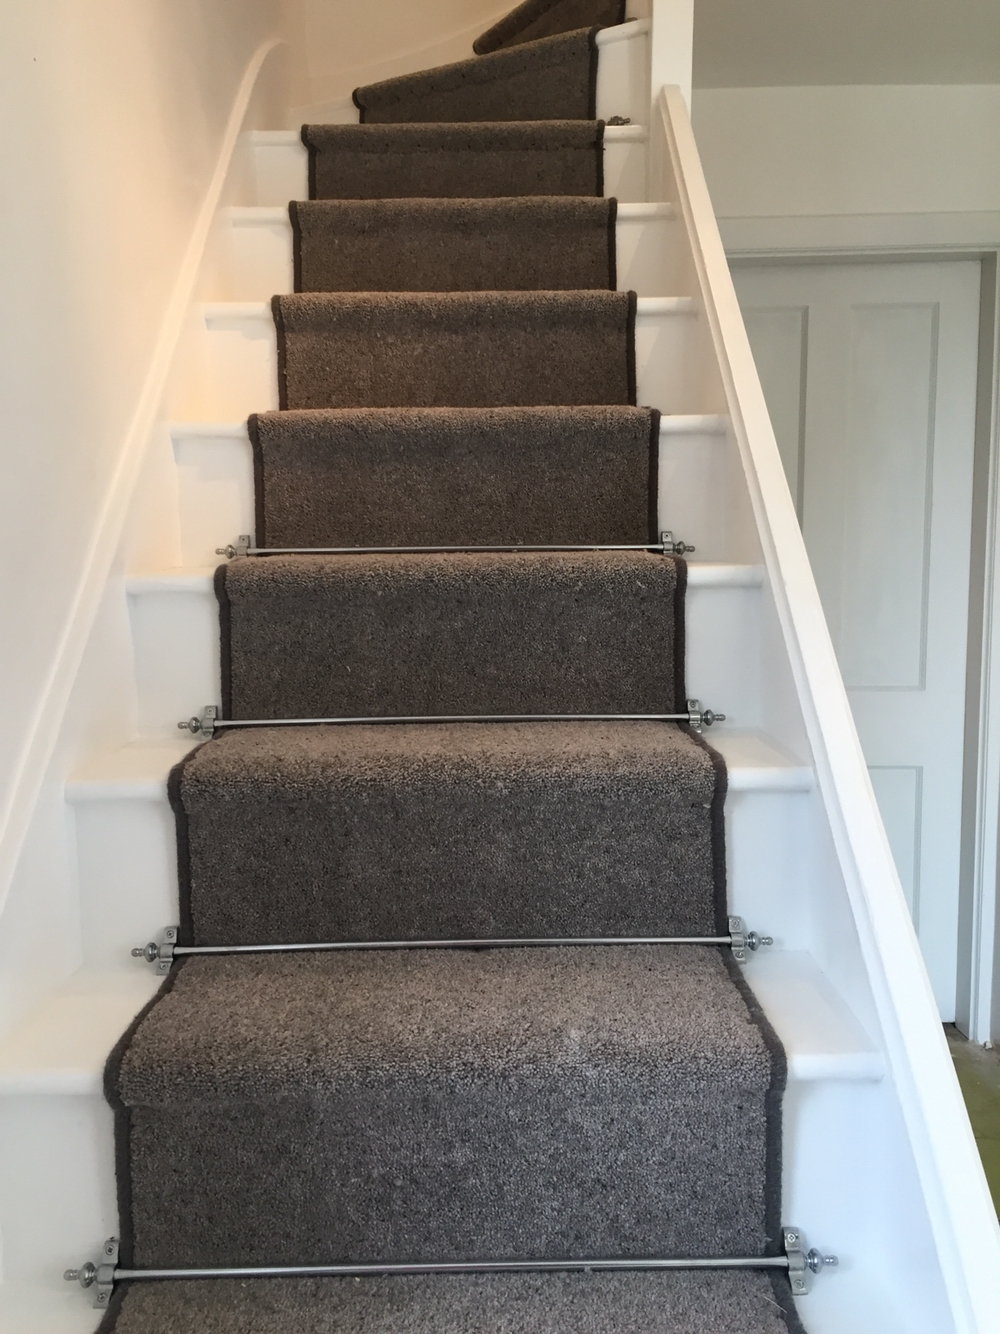 Grey Carpet With Black Border And Golden Stair Rods To Stairs Within Stair Tread Carpet Rods (Image 5 of 15)